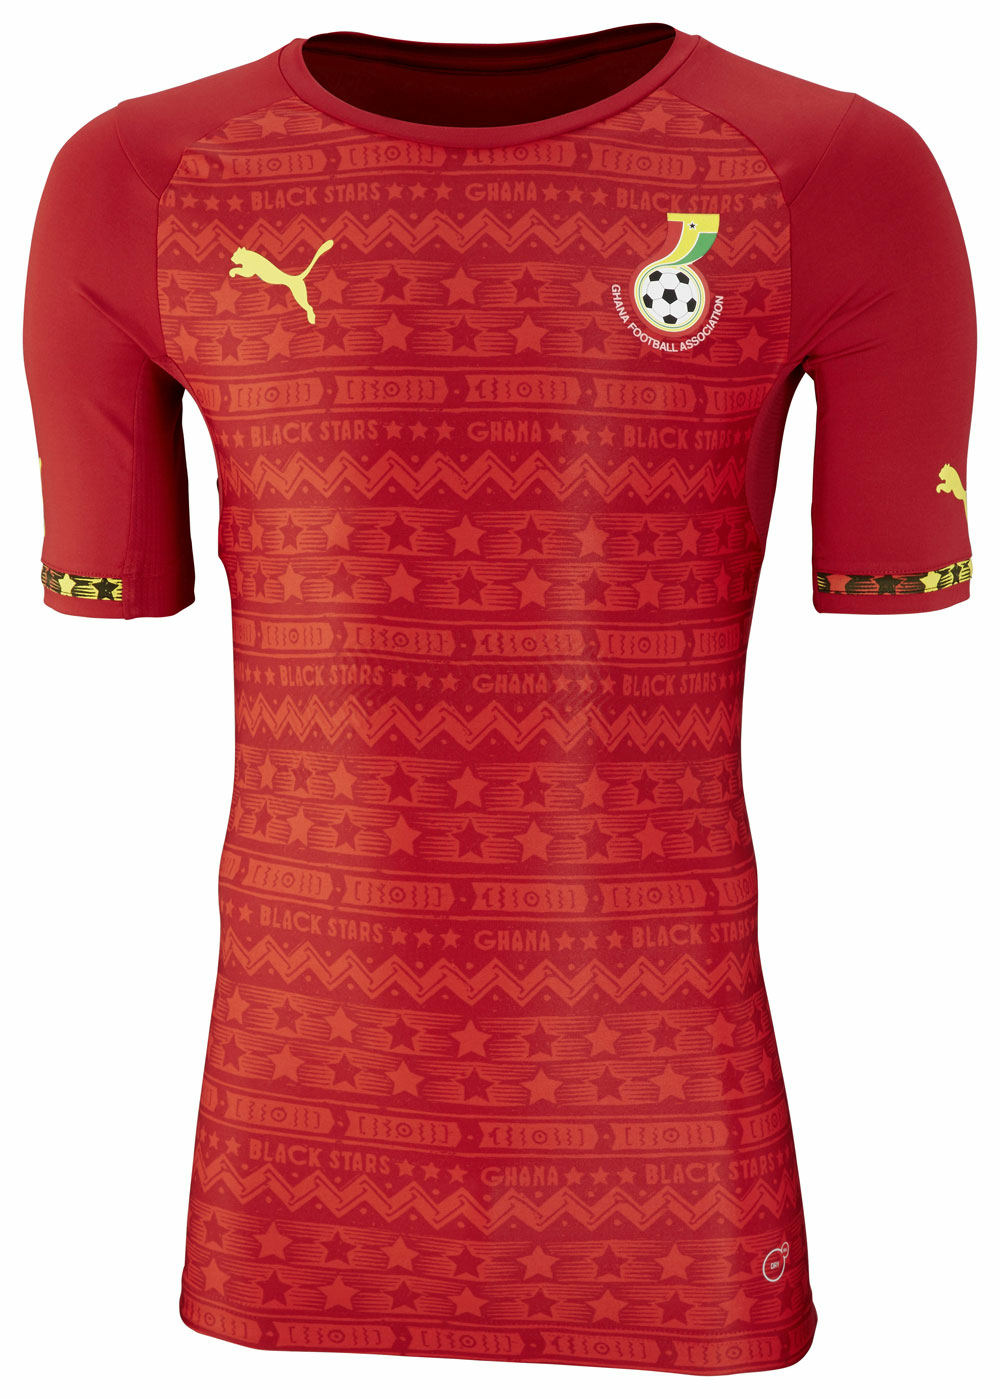 detailed look 917af c75f2 Top 10 Africa Cup Of Nations Football Shirts: Ghana ...